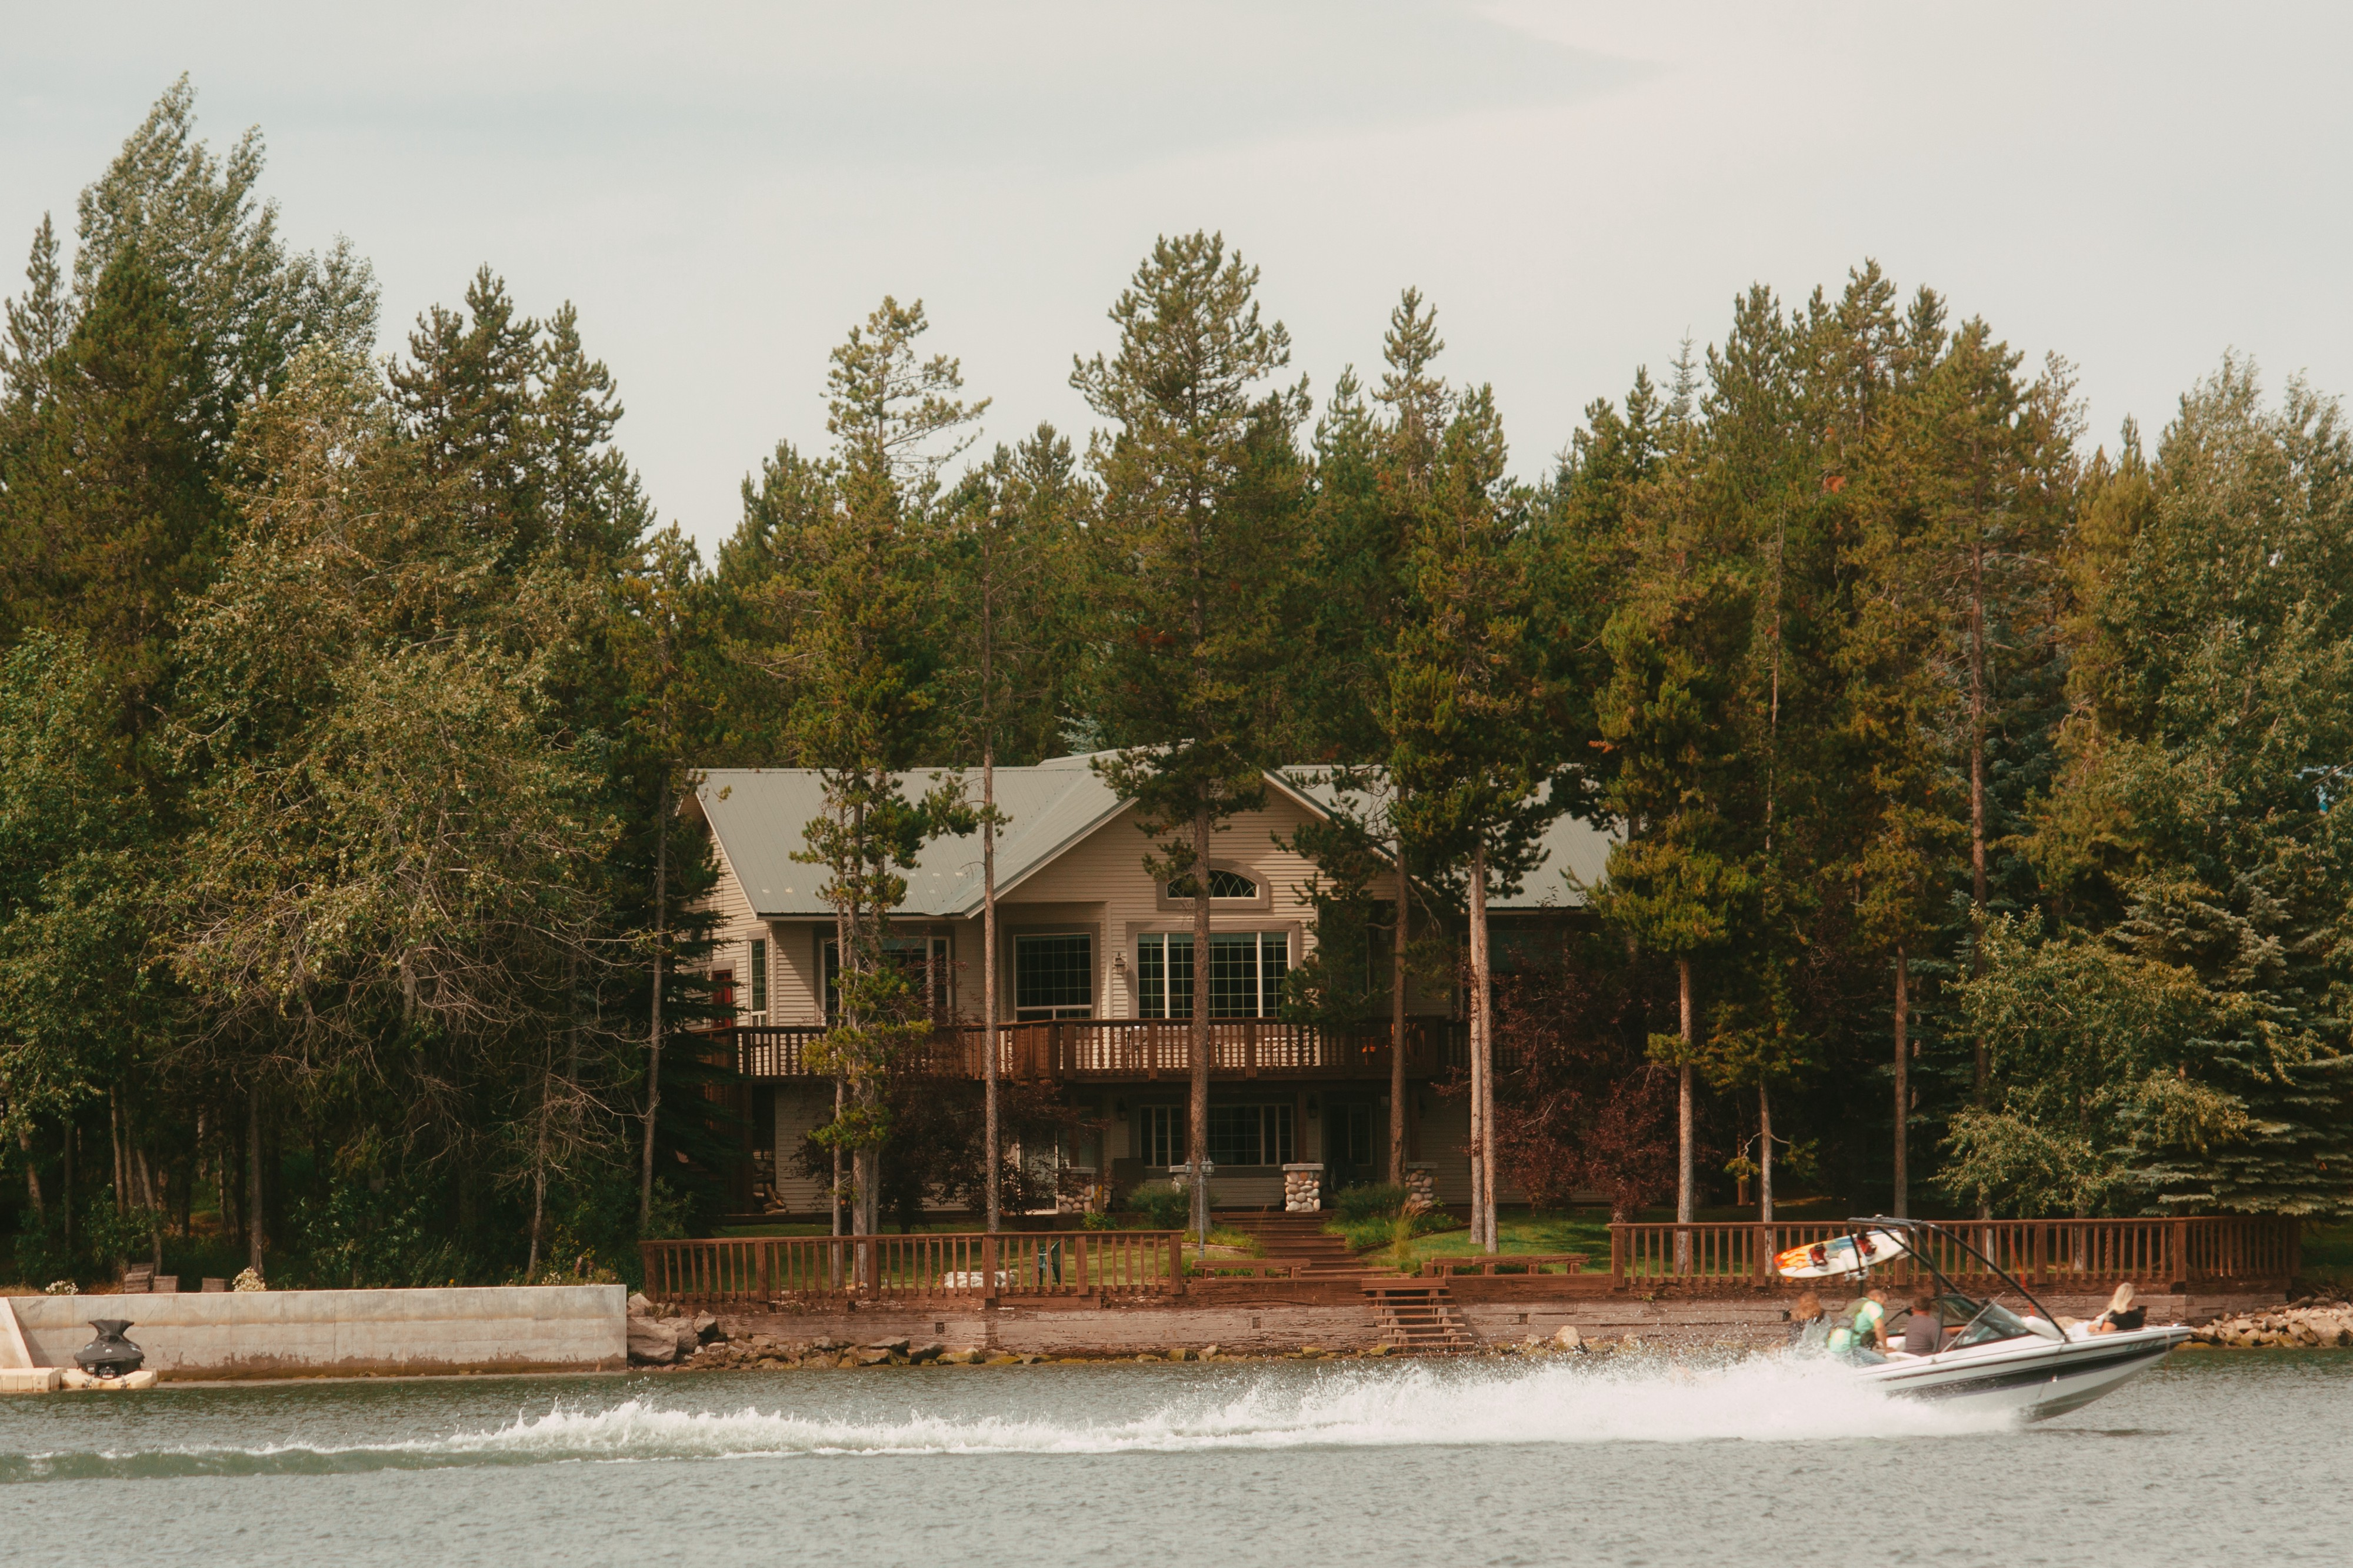 Photo of a House on the river.